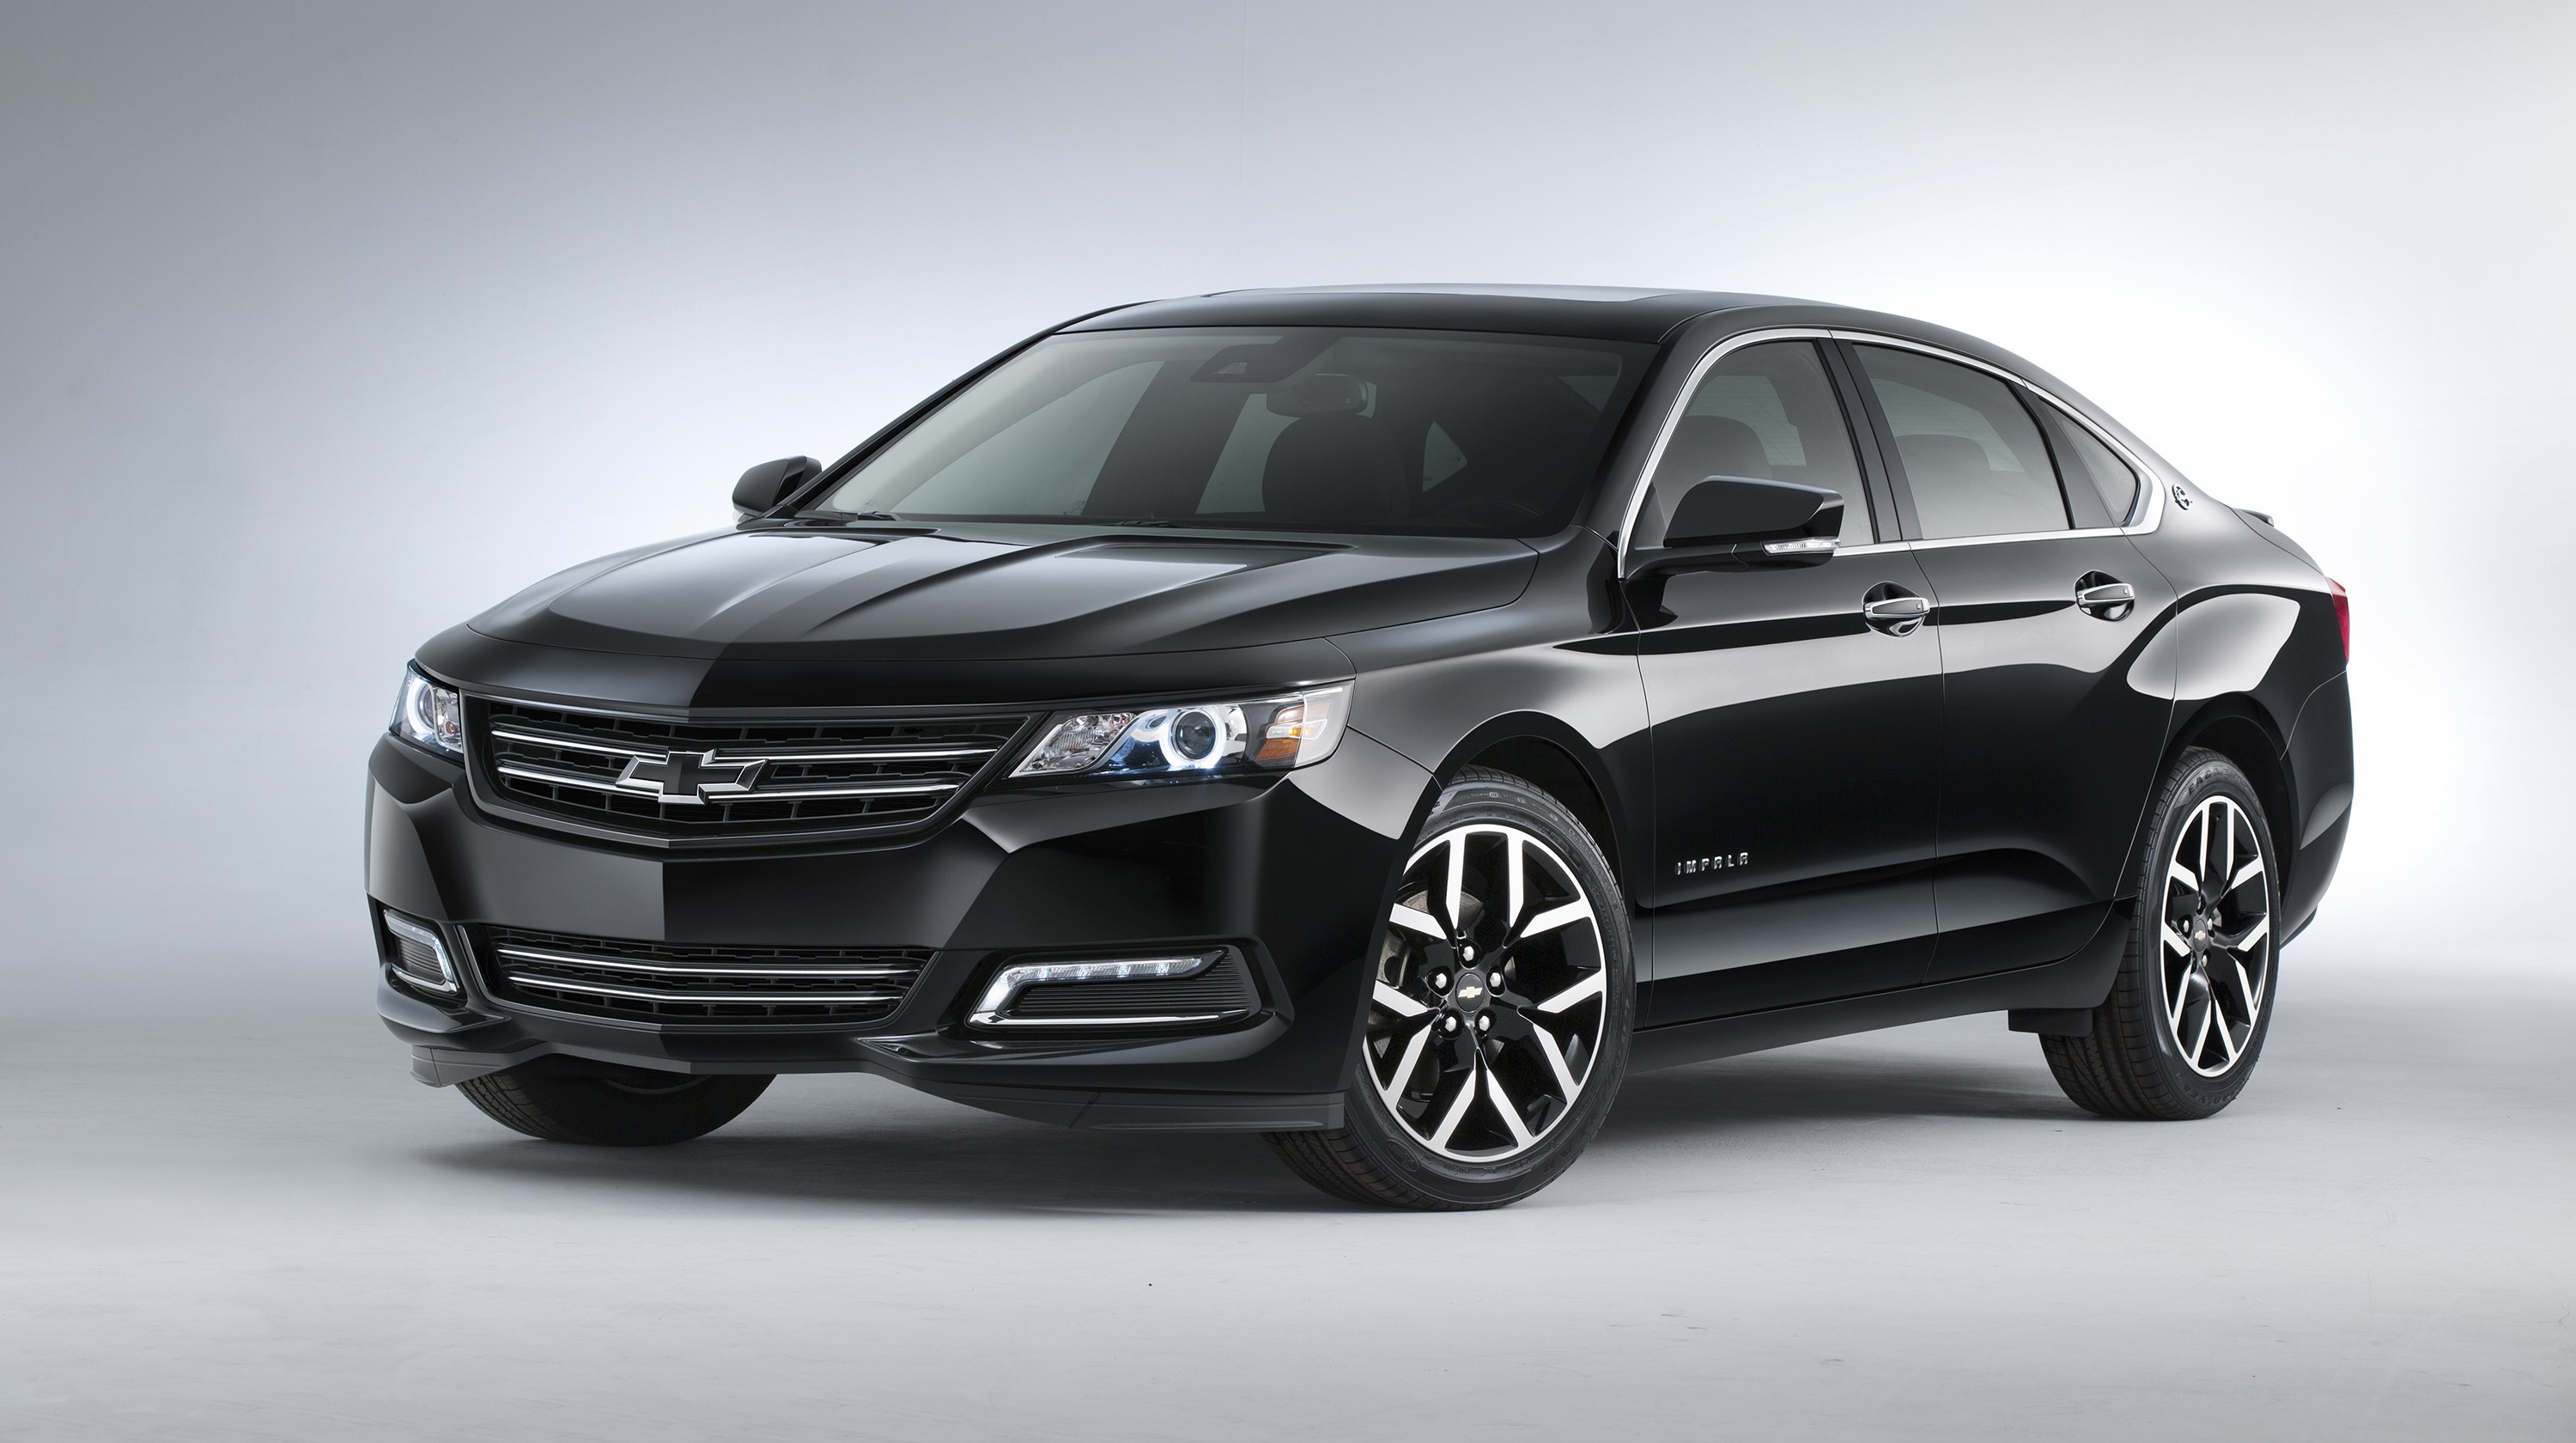 2015 Chevrolet Impala Blackout Concept Review Top Speed